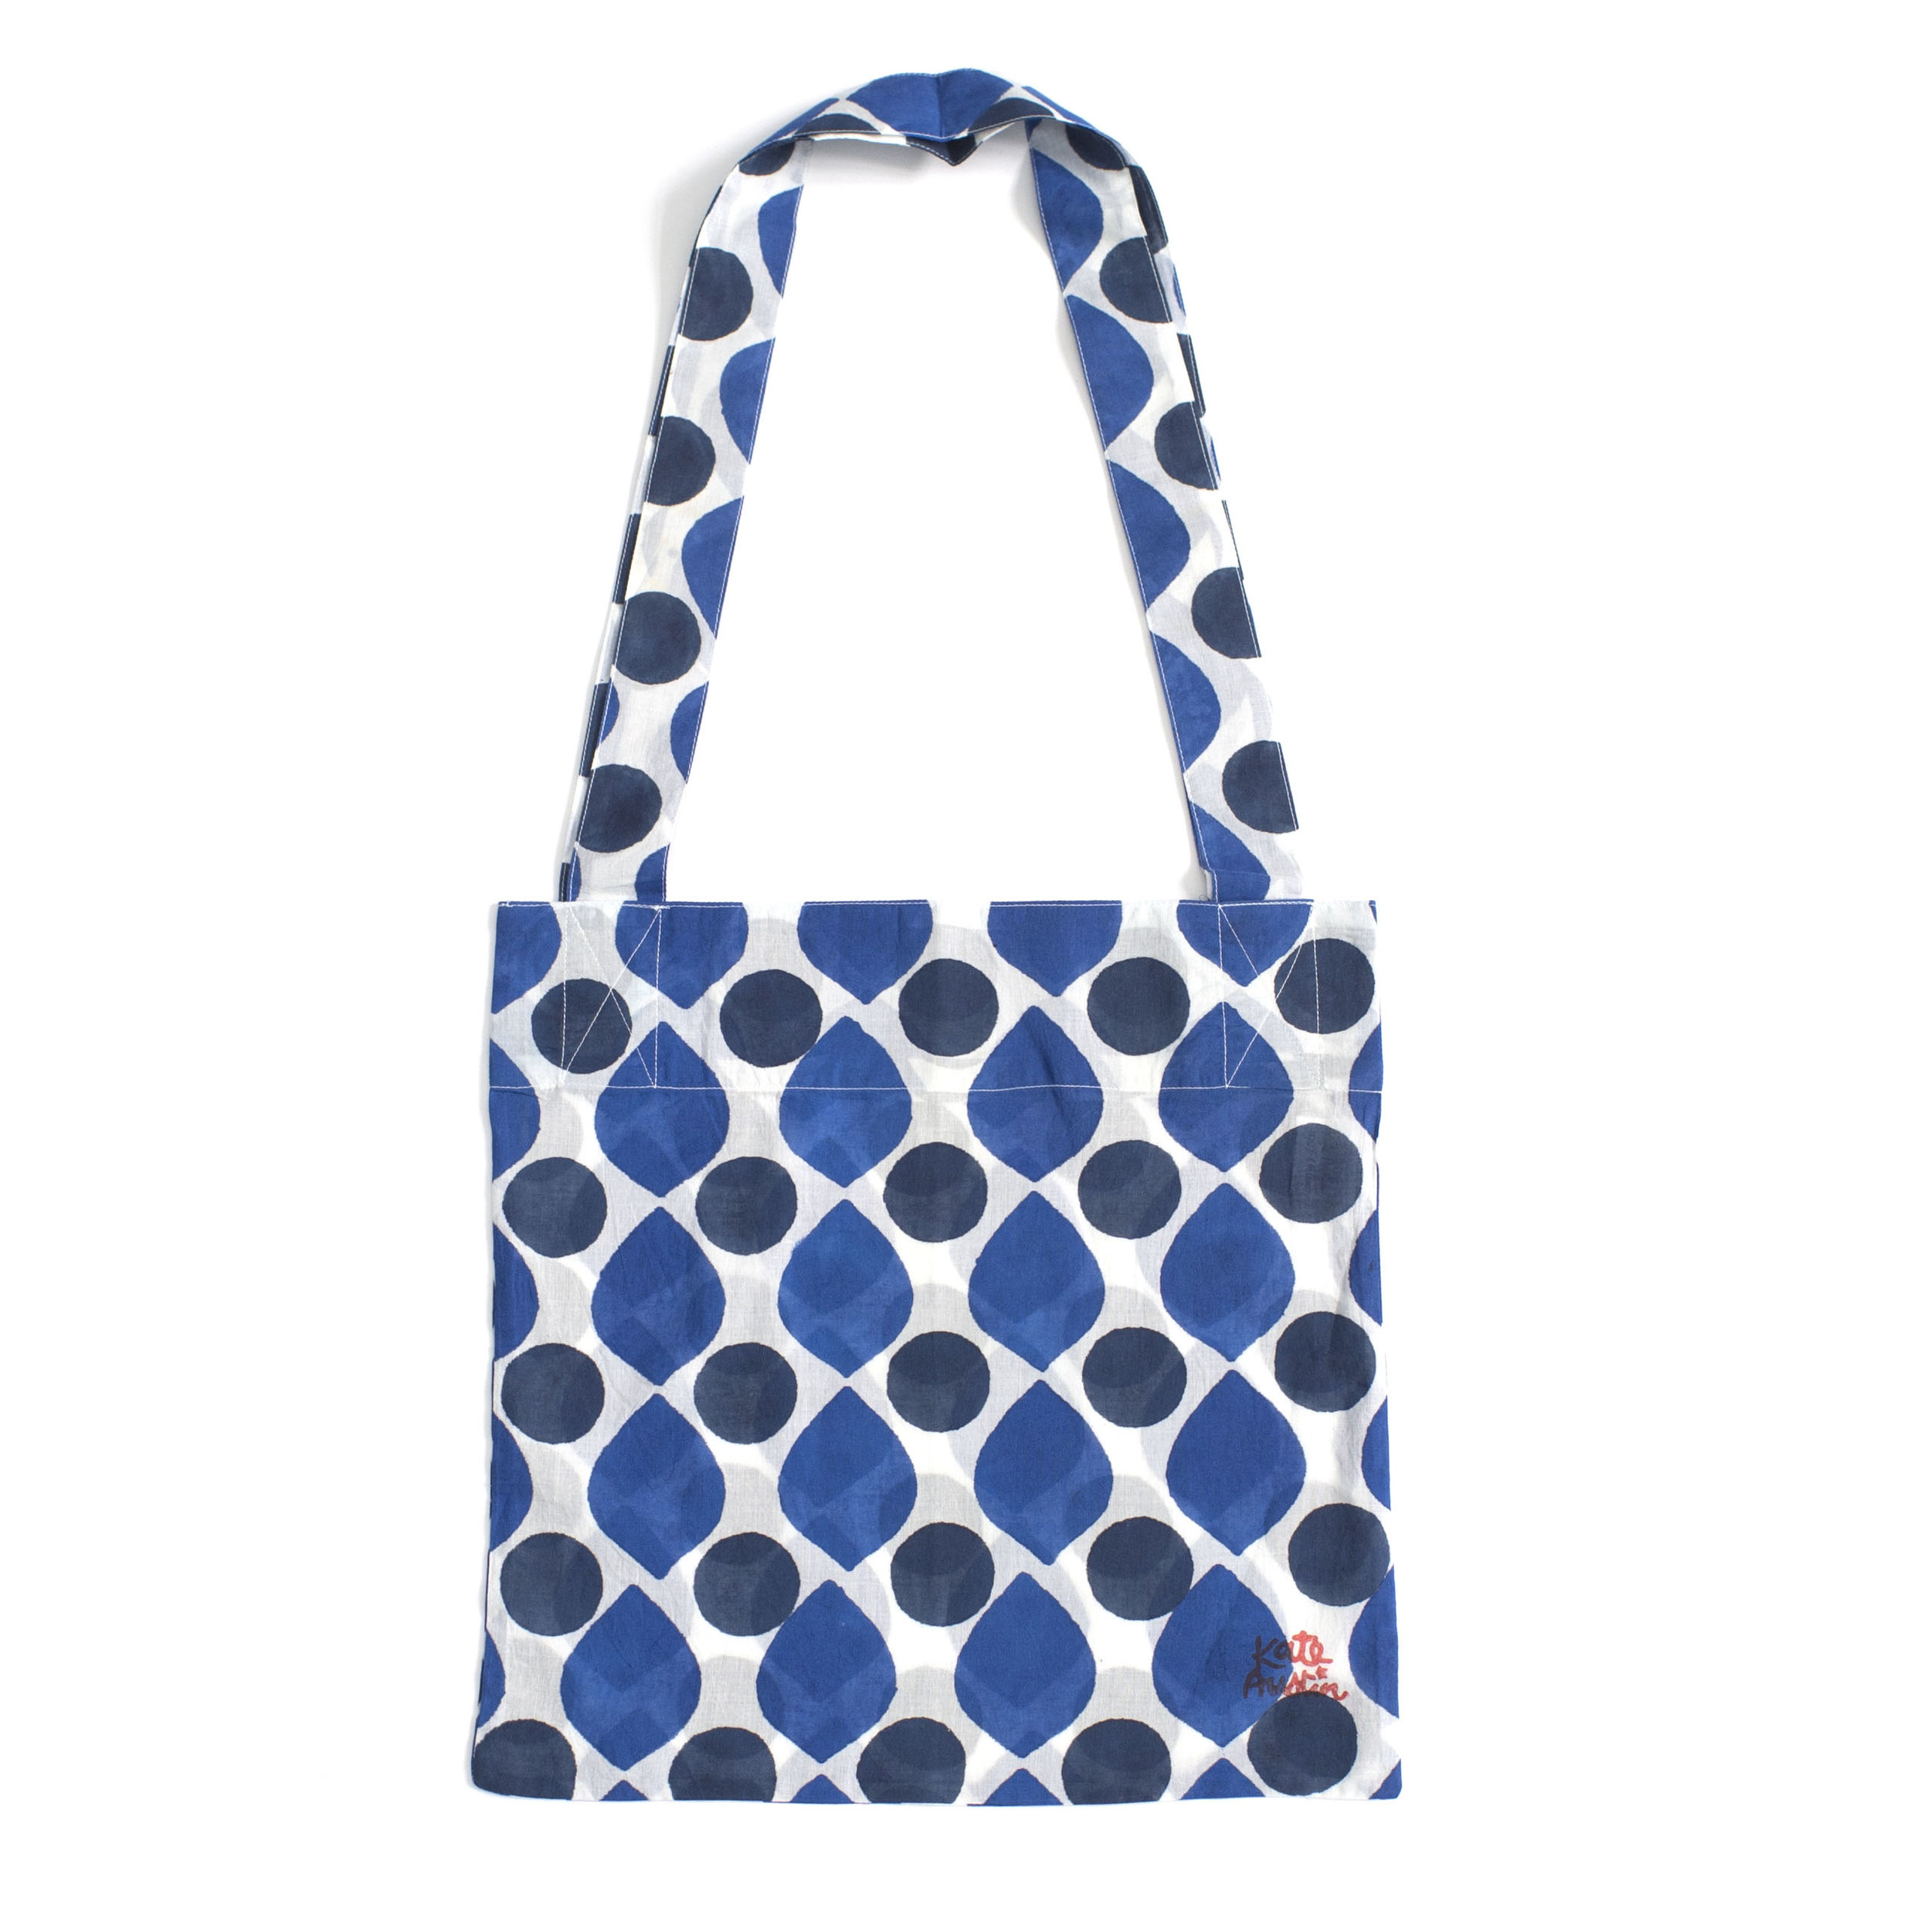 Light and Strong Everyday Totes